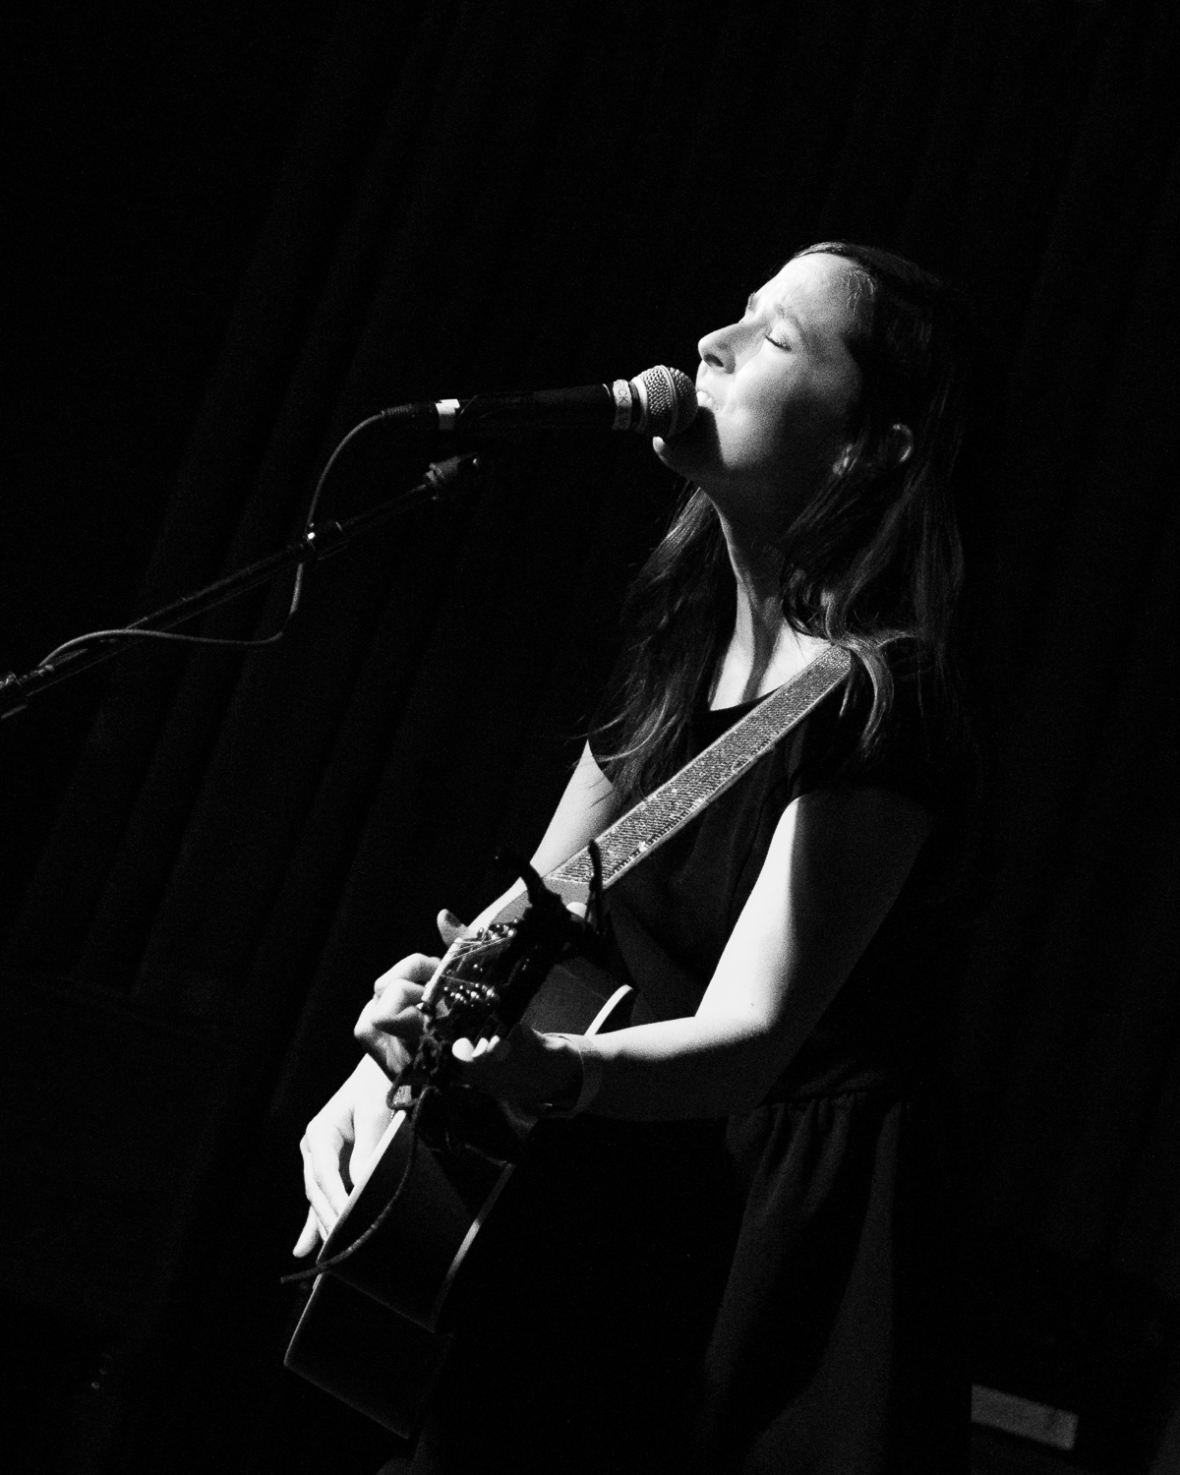 Meiko performs at Brick and Mortar Music Hall, San Francisco